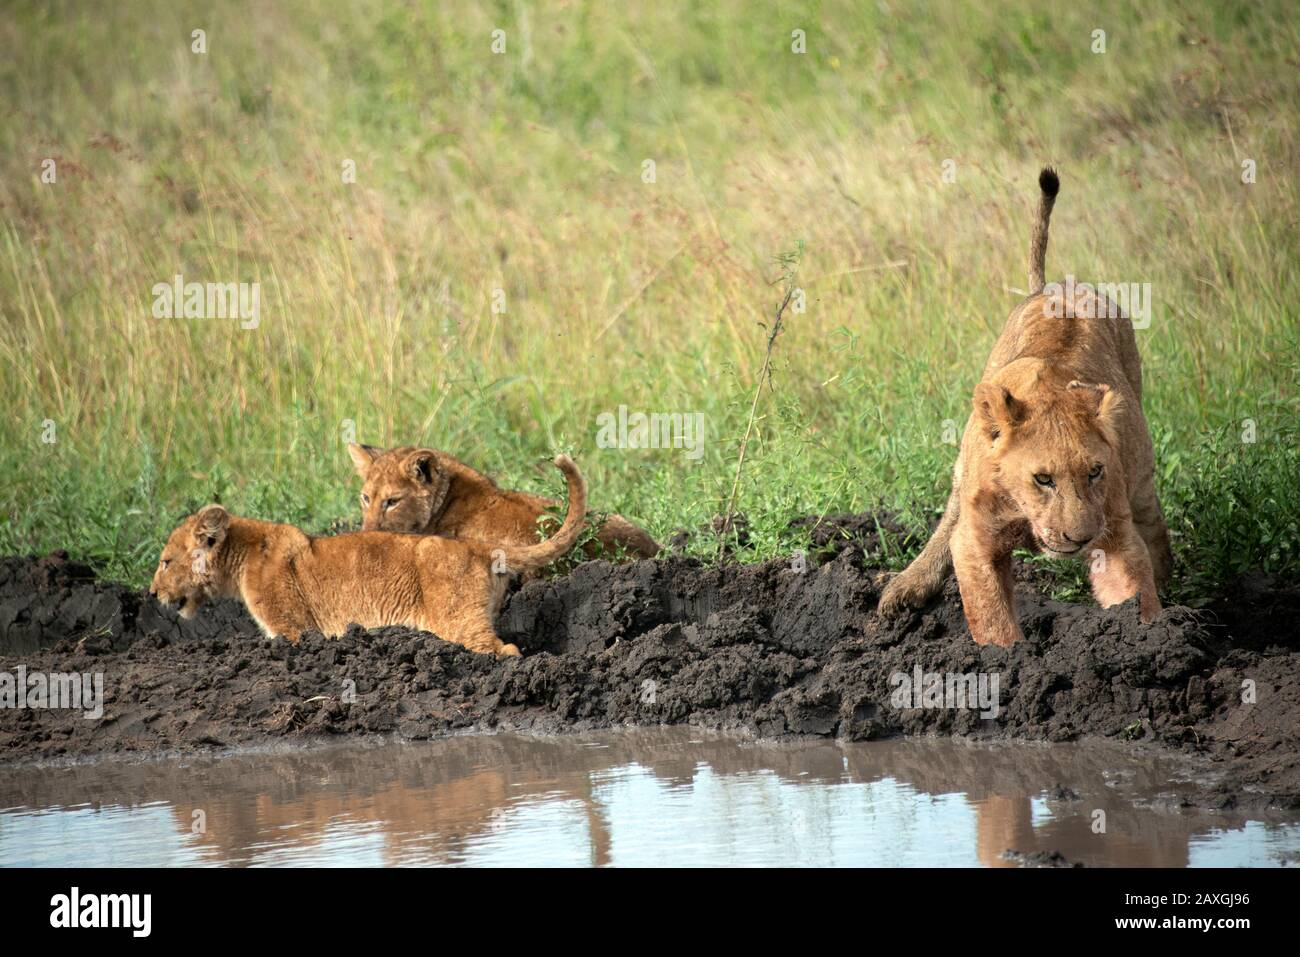 Lioness and cubs off for a wash. Stock Photo